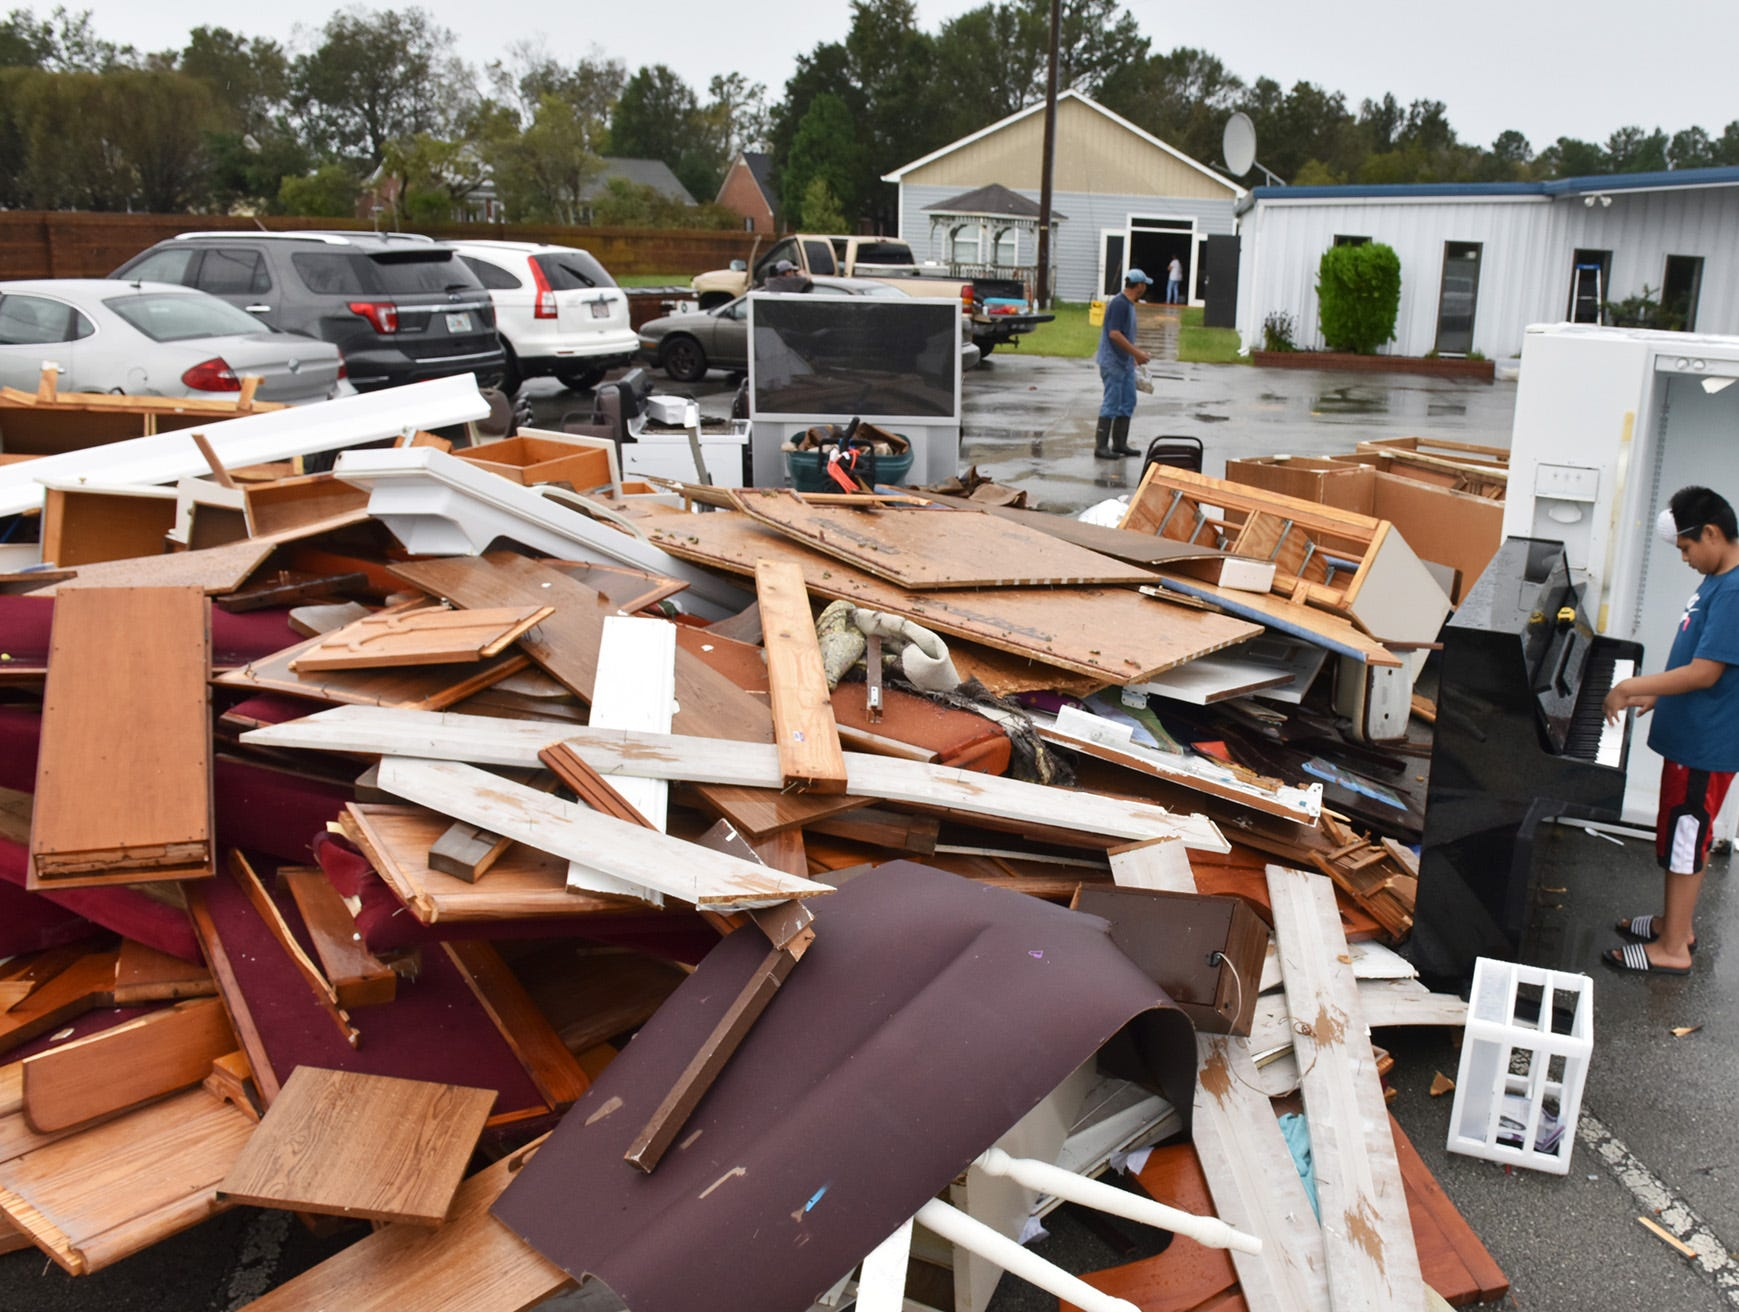 Manuel Osirio, 12, of Moorehead City, N.C. plays a piano among the pile of water soaked items being thrown out at the Seventh-Day Adventist Church in New Bern, N.C. on Sunday morning on September 16, 2018. Hurricane Florence brought heavy rains and winds to the area causing severe damage.